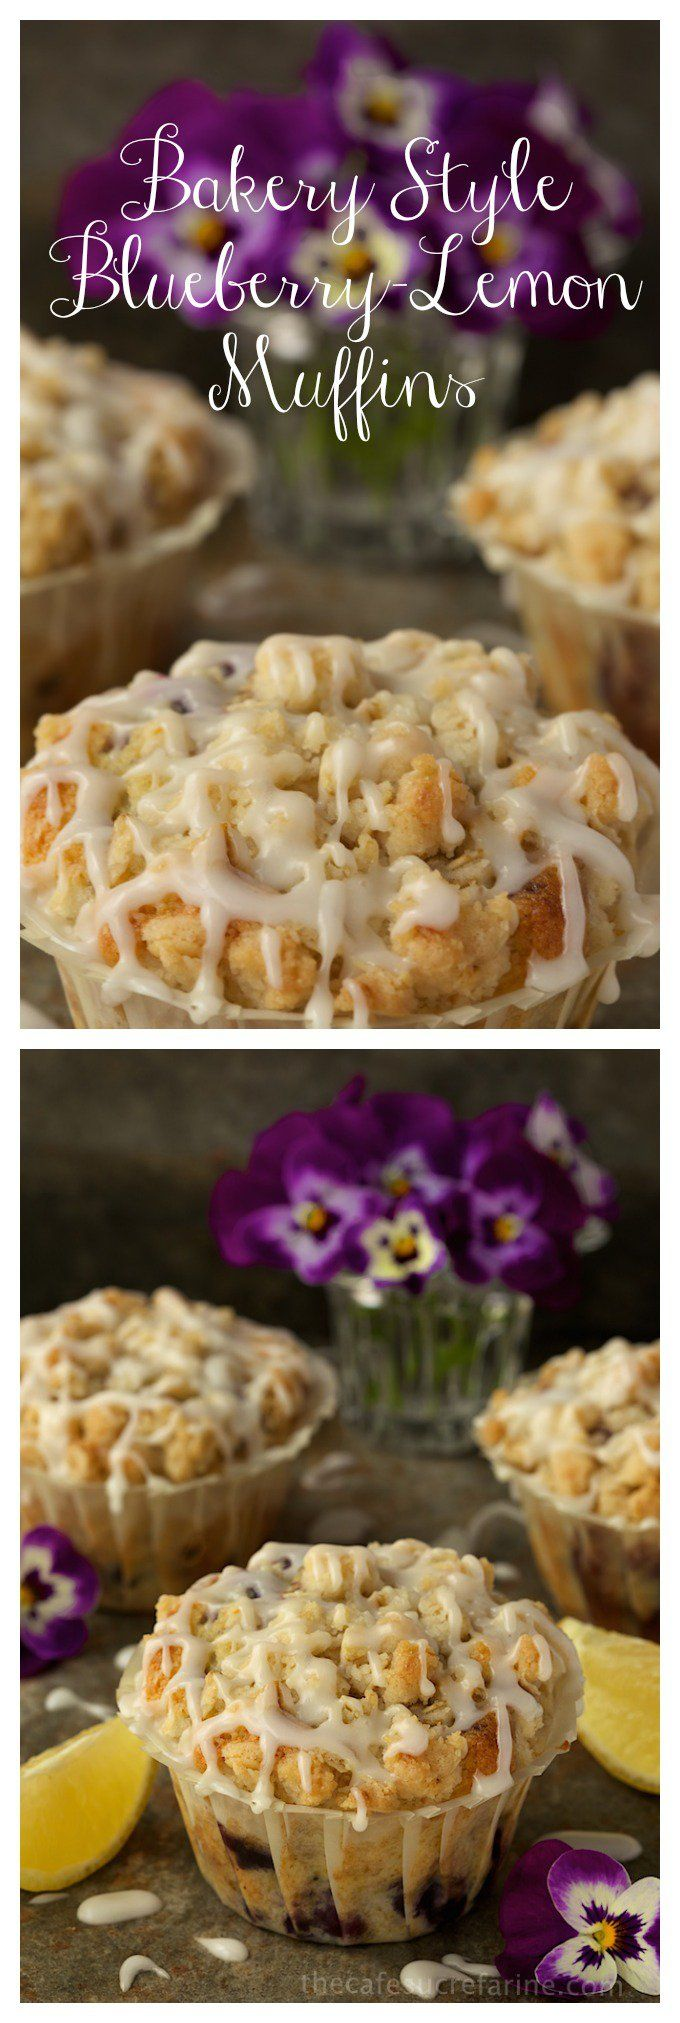 Bakery Style Blueberry-Lemon Muffins - the kind of muffins you find at a gourmet bakery shop! thecafesucrefarine.com